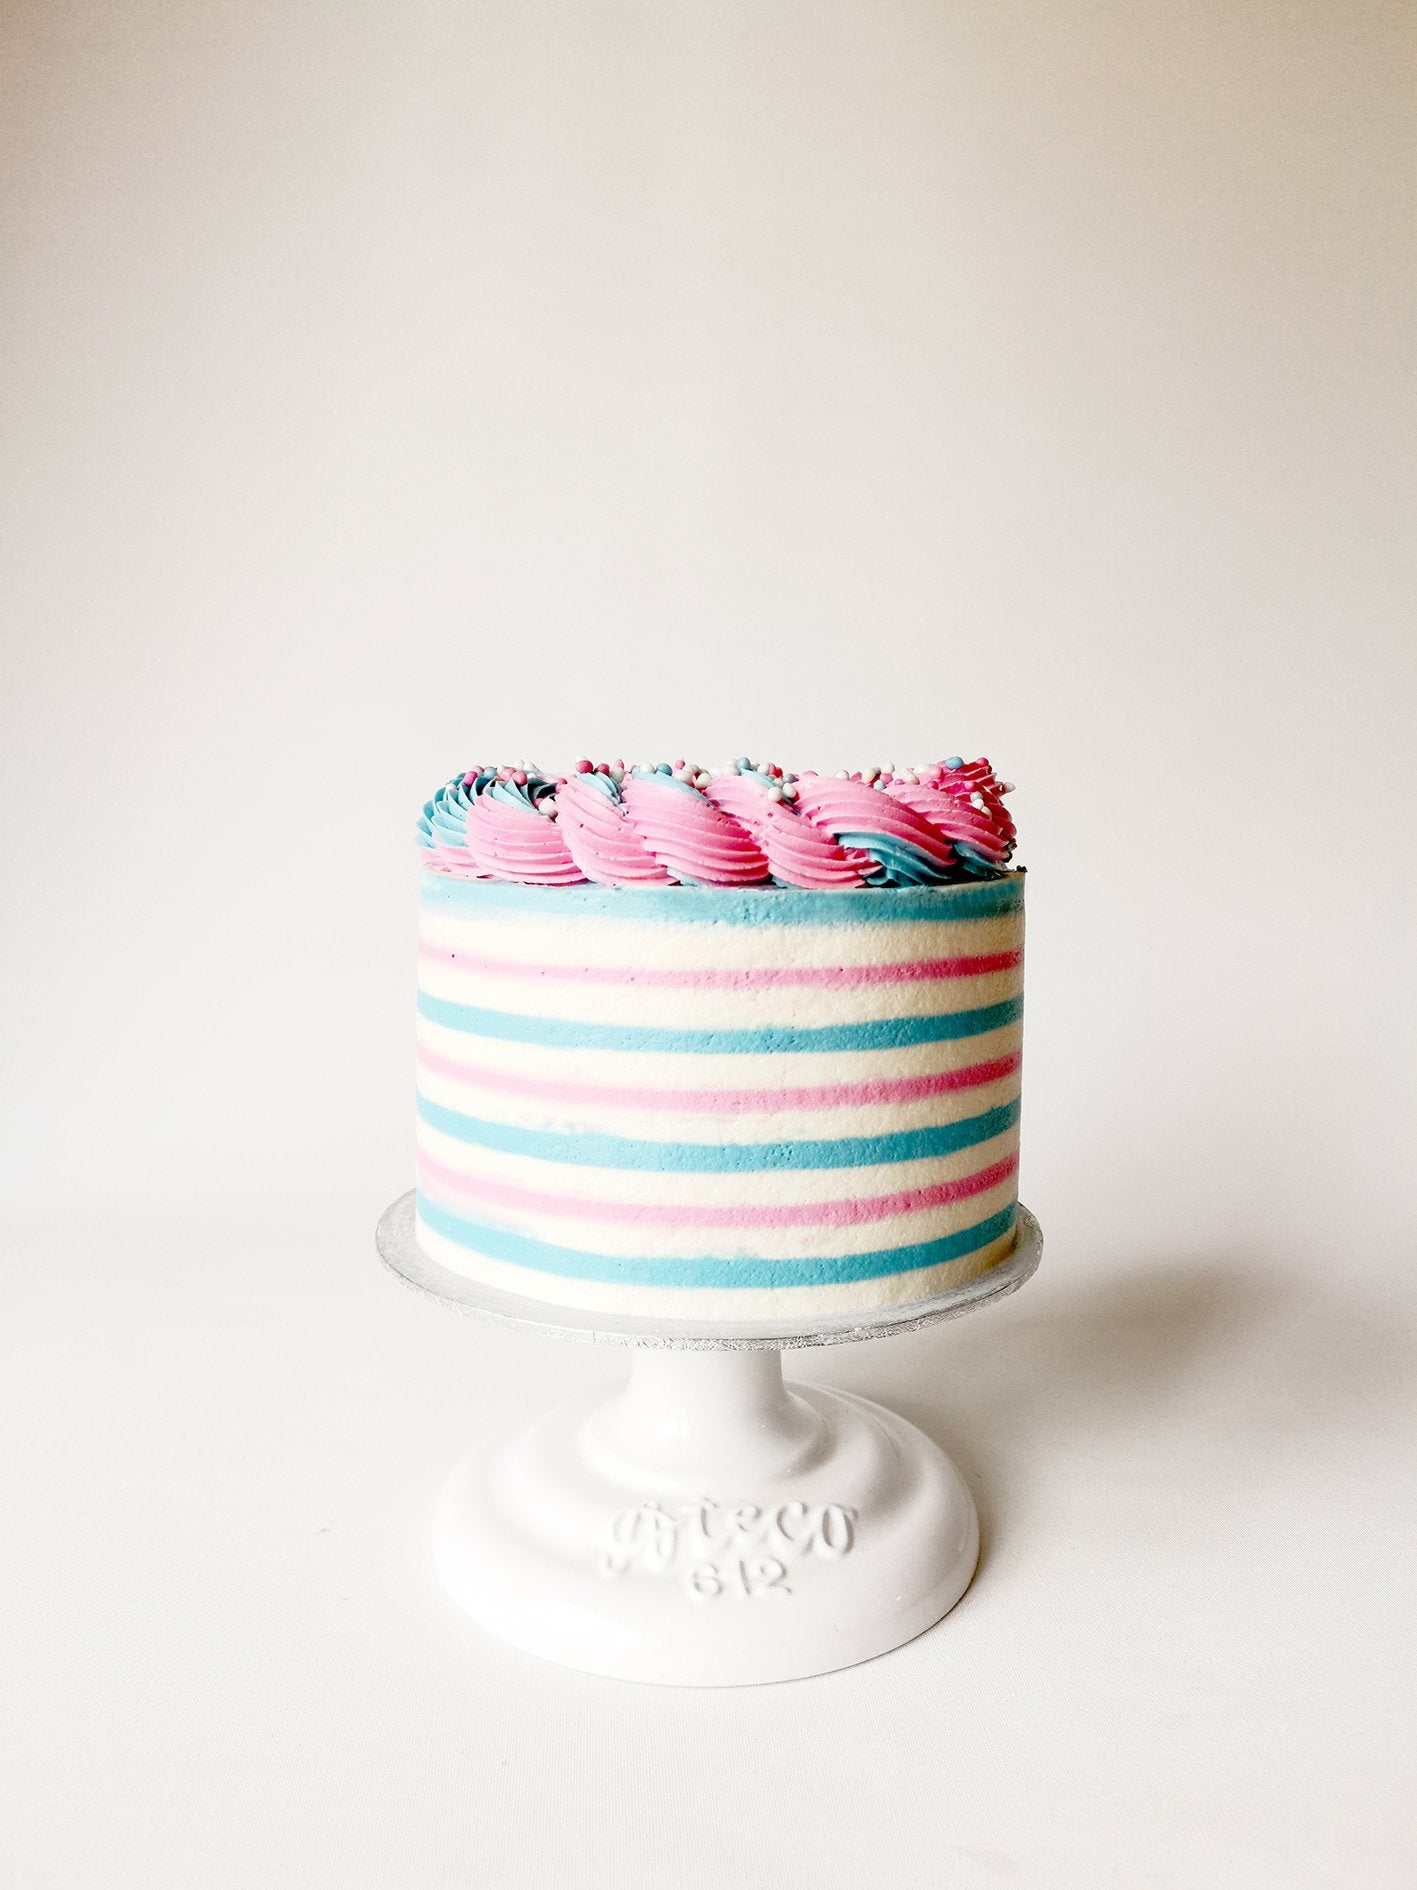 Dutch mice gender reveal cake